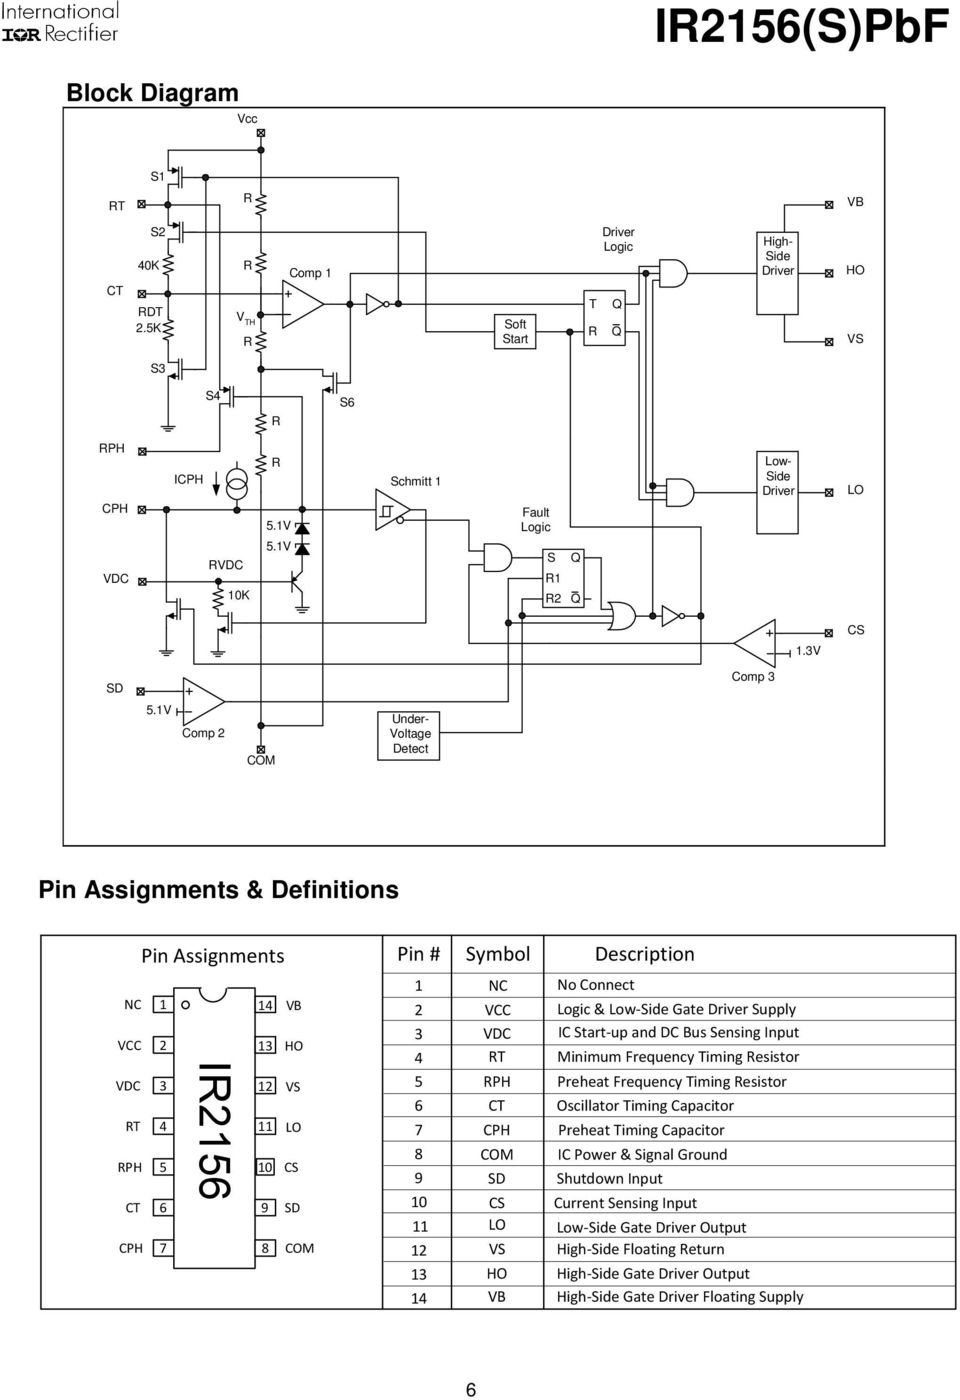 Ir2156pbf Ir2156 Ballast Control Ic Packages Features Description 12v Switching Car Psu By Uc3843 Circuit Wiring Diagrams 1v Comp 2 Com Under Voltage Detect Pin Assignments Definitions Nc 1